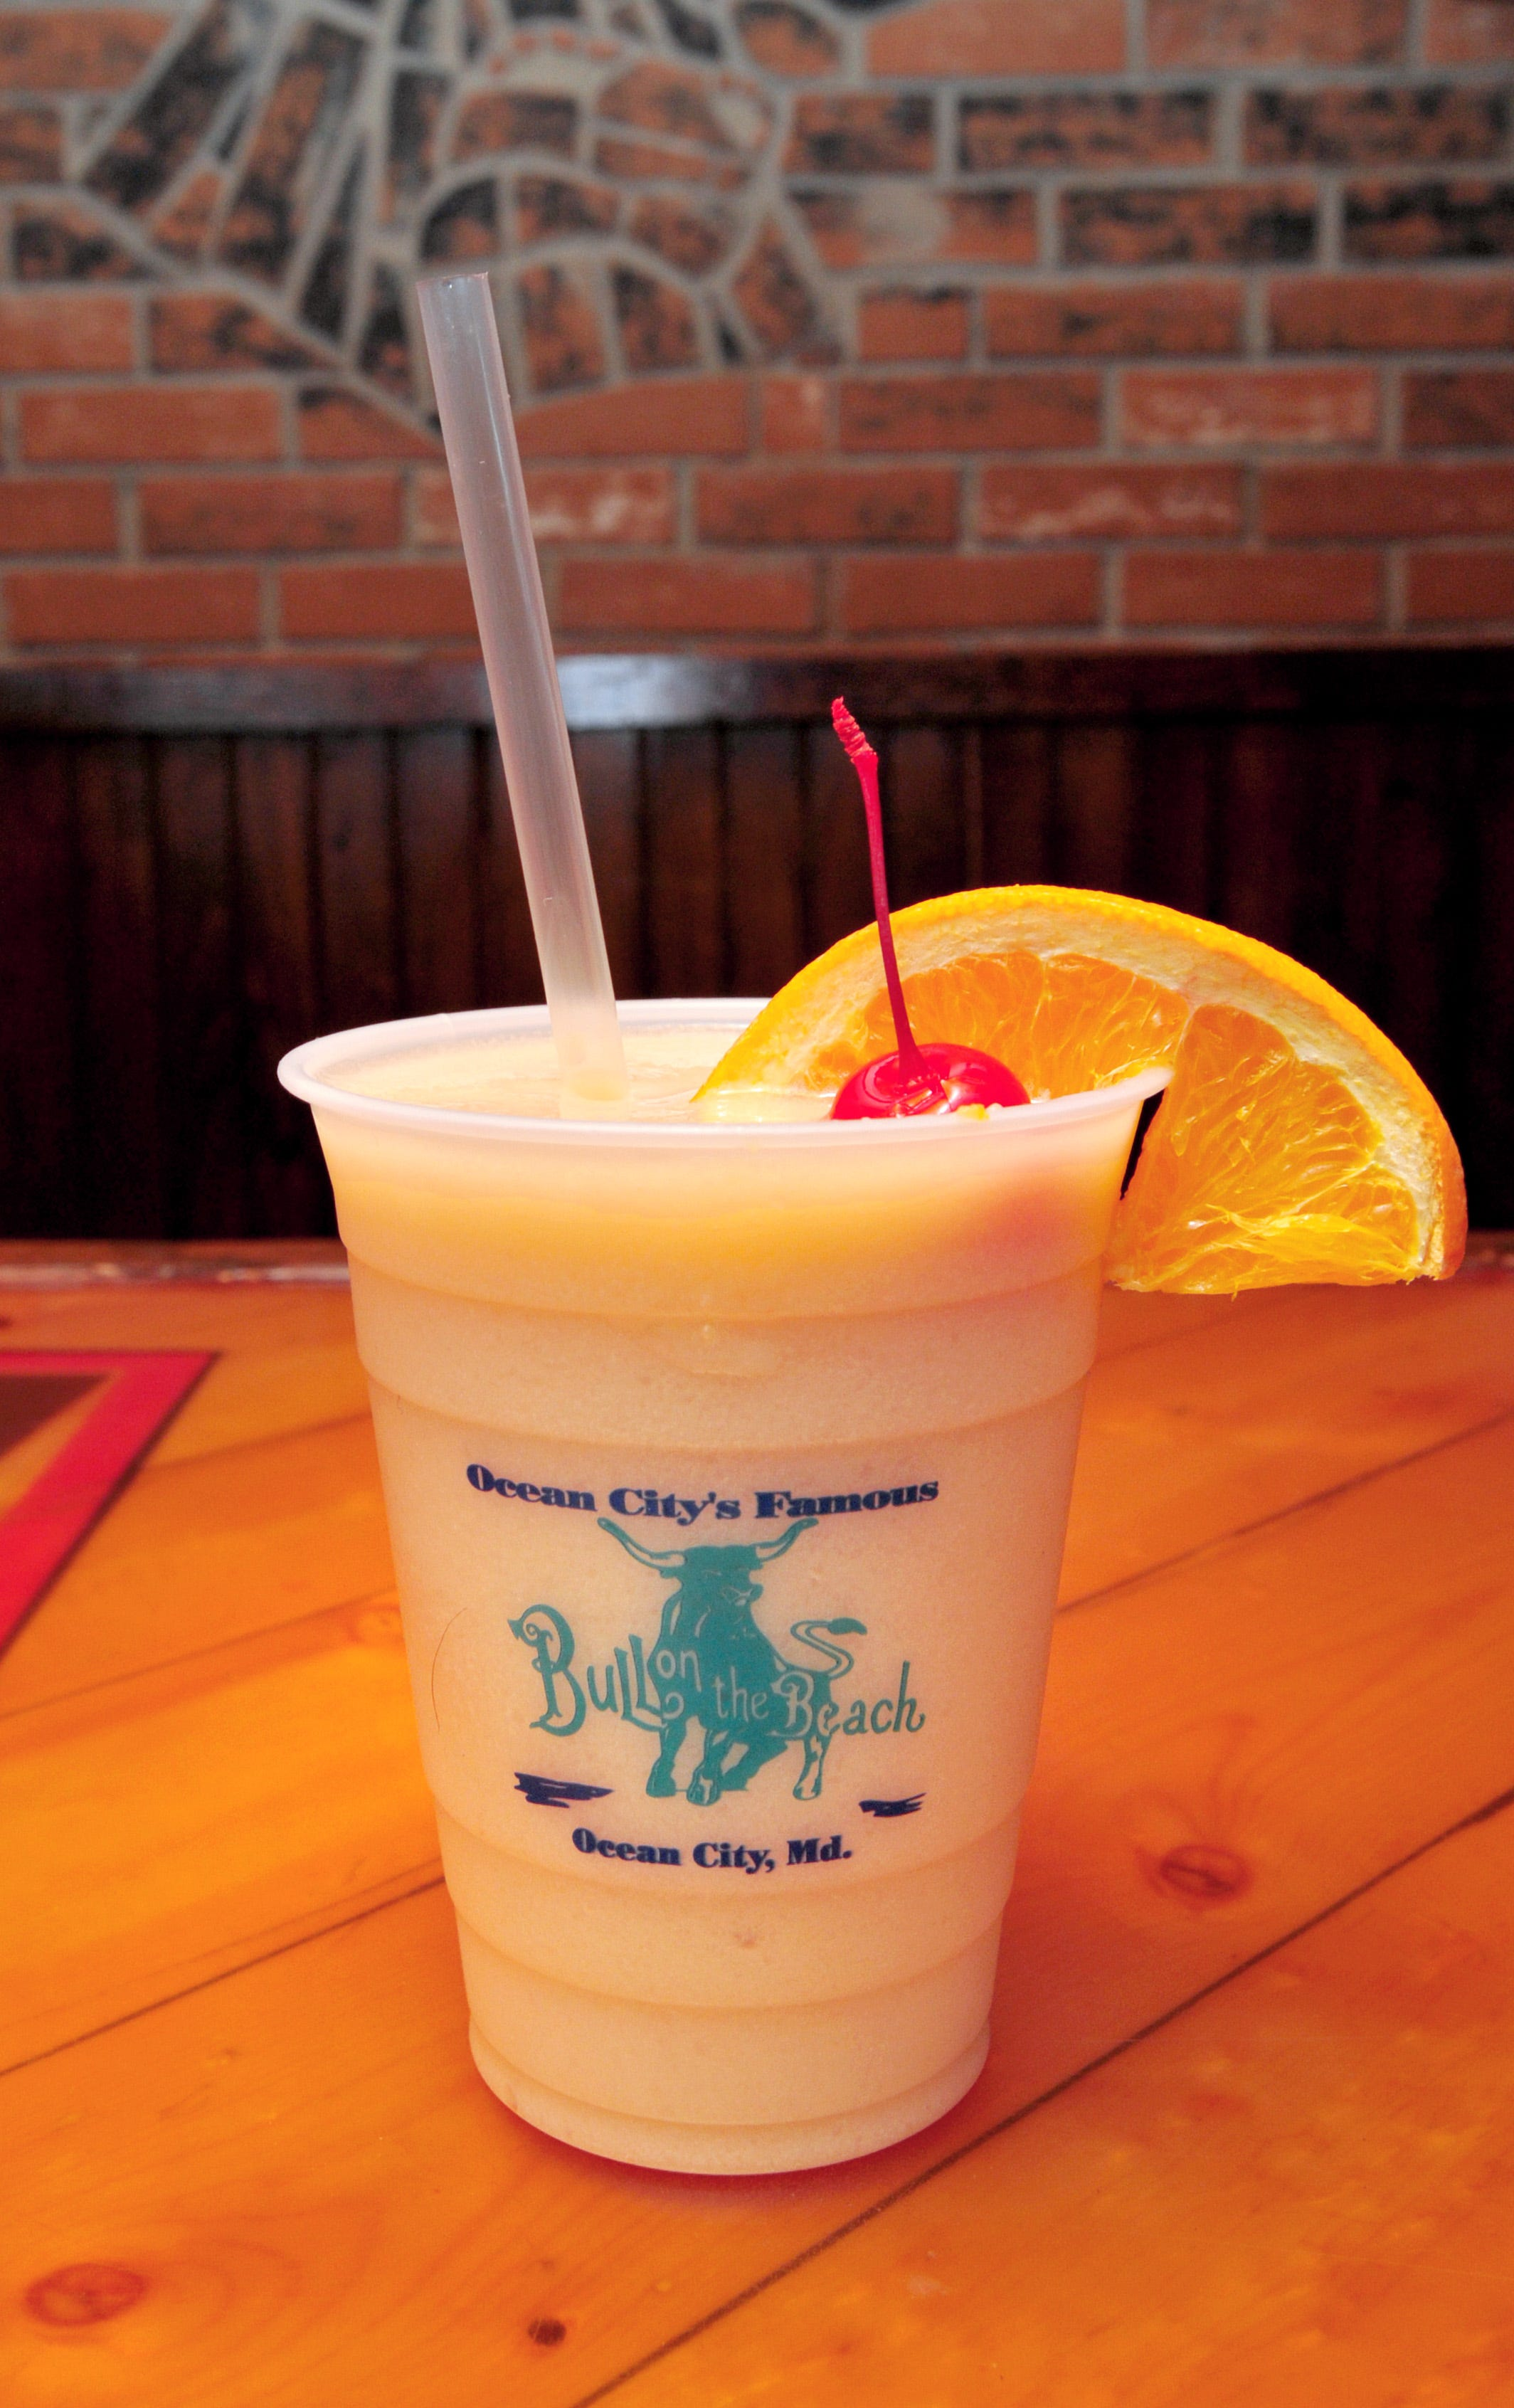 Bull on the Beach's Raging Bull, made with pina colada, Dark Jamaican Rum, and a 151 floater.